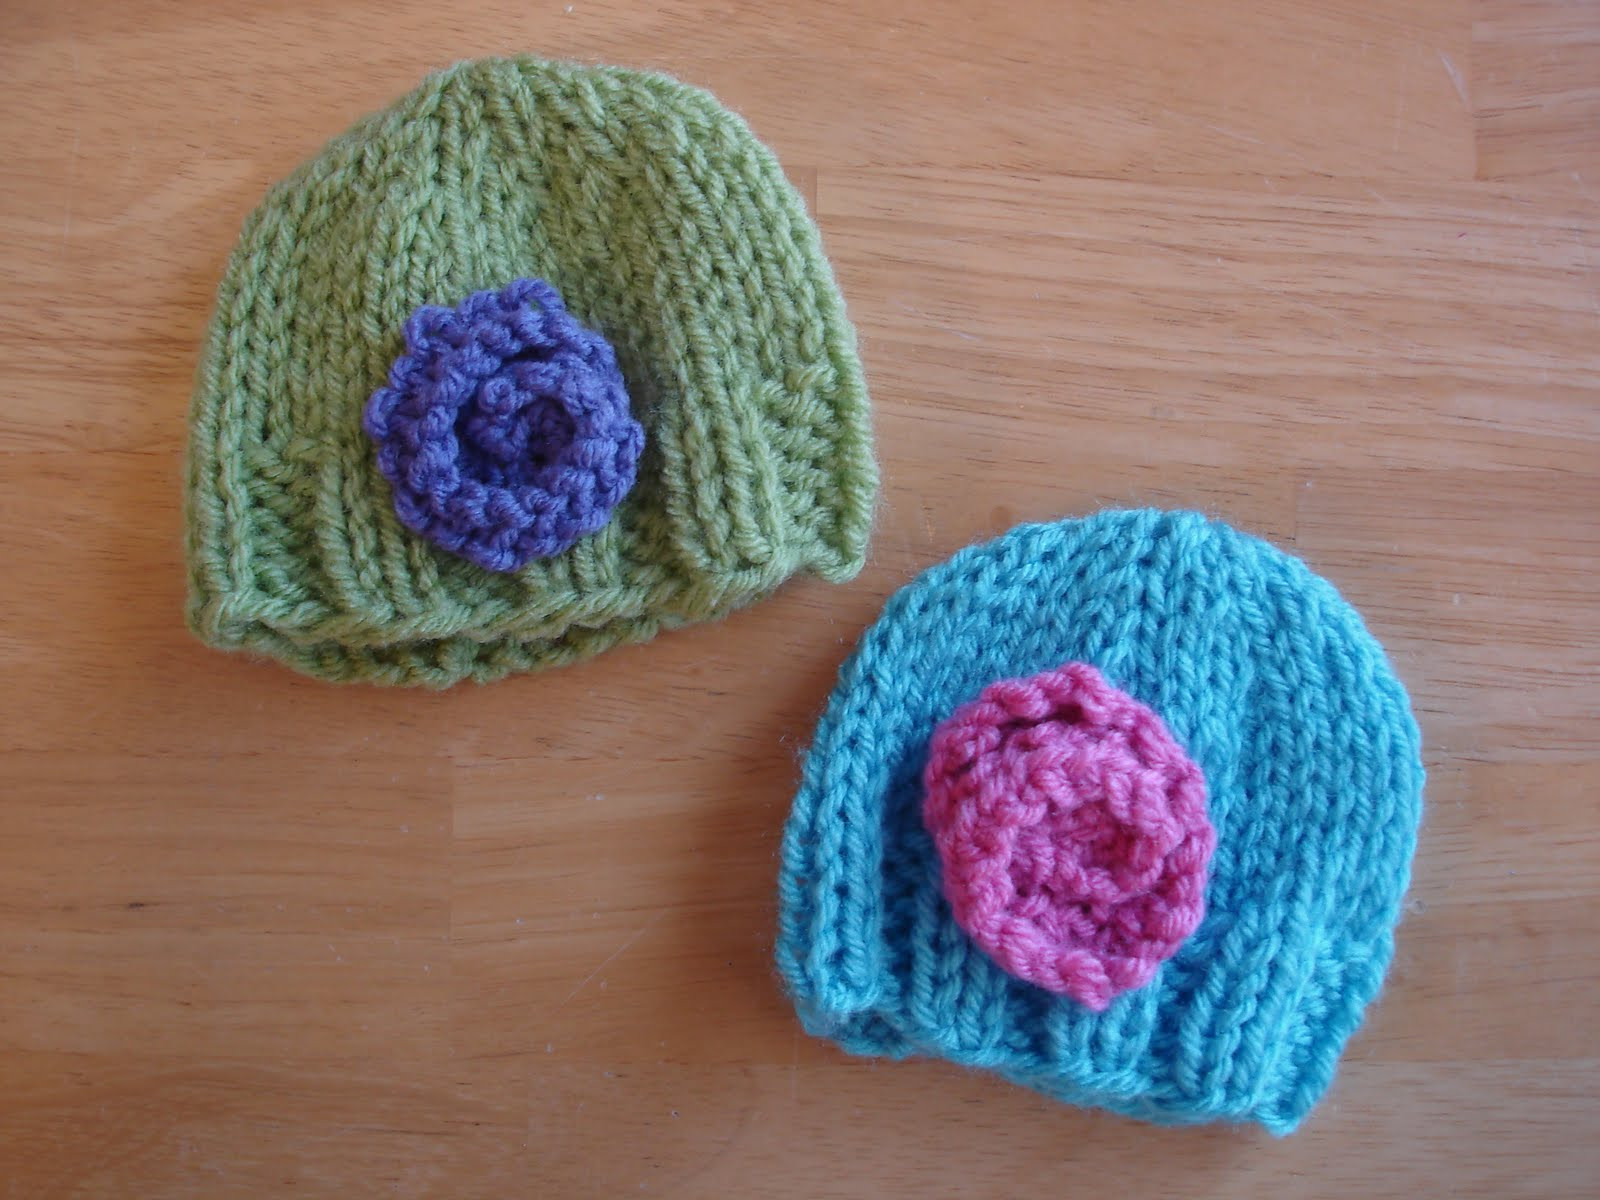 Free Knitting Patterns for Baby Hats Lovely Fiber Flux Free Knitting Pattern Baby Doll Hats Of Perfect 44 Models Free Knitting Patterns for Baby Hats